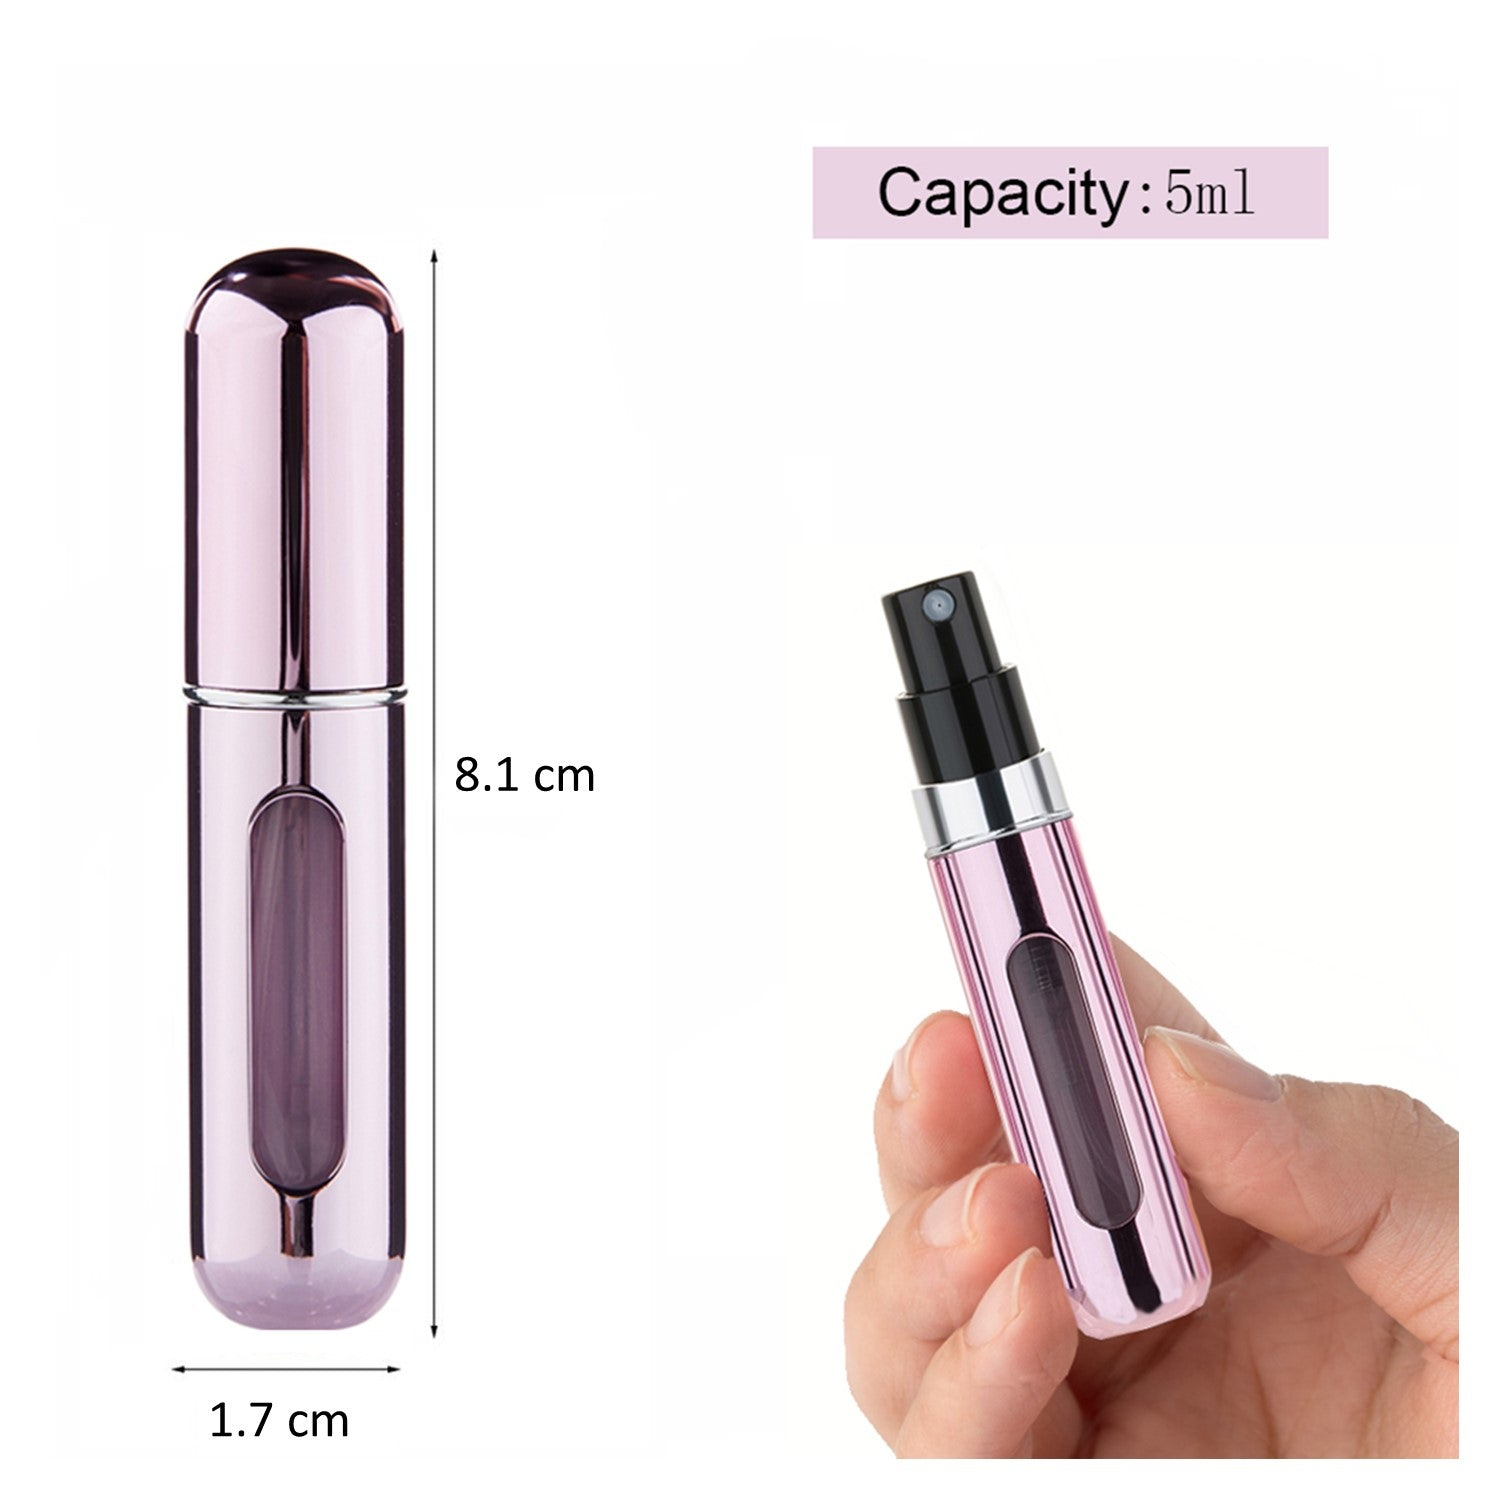 4 pack Premium 5ml Mini Perfume Atomiser Refillable Aluminum Spray Travel Bottles